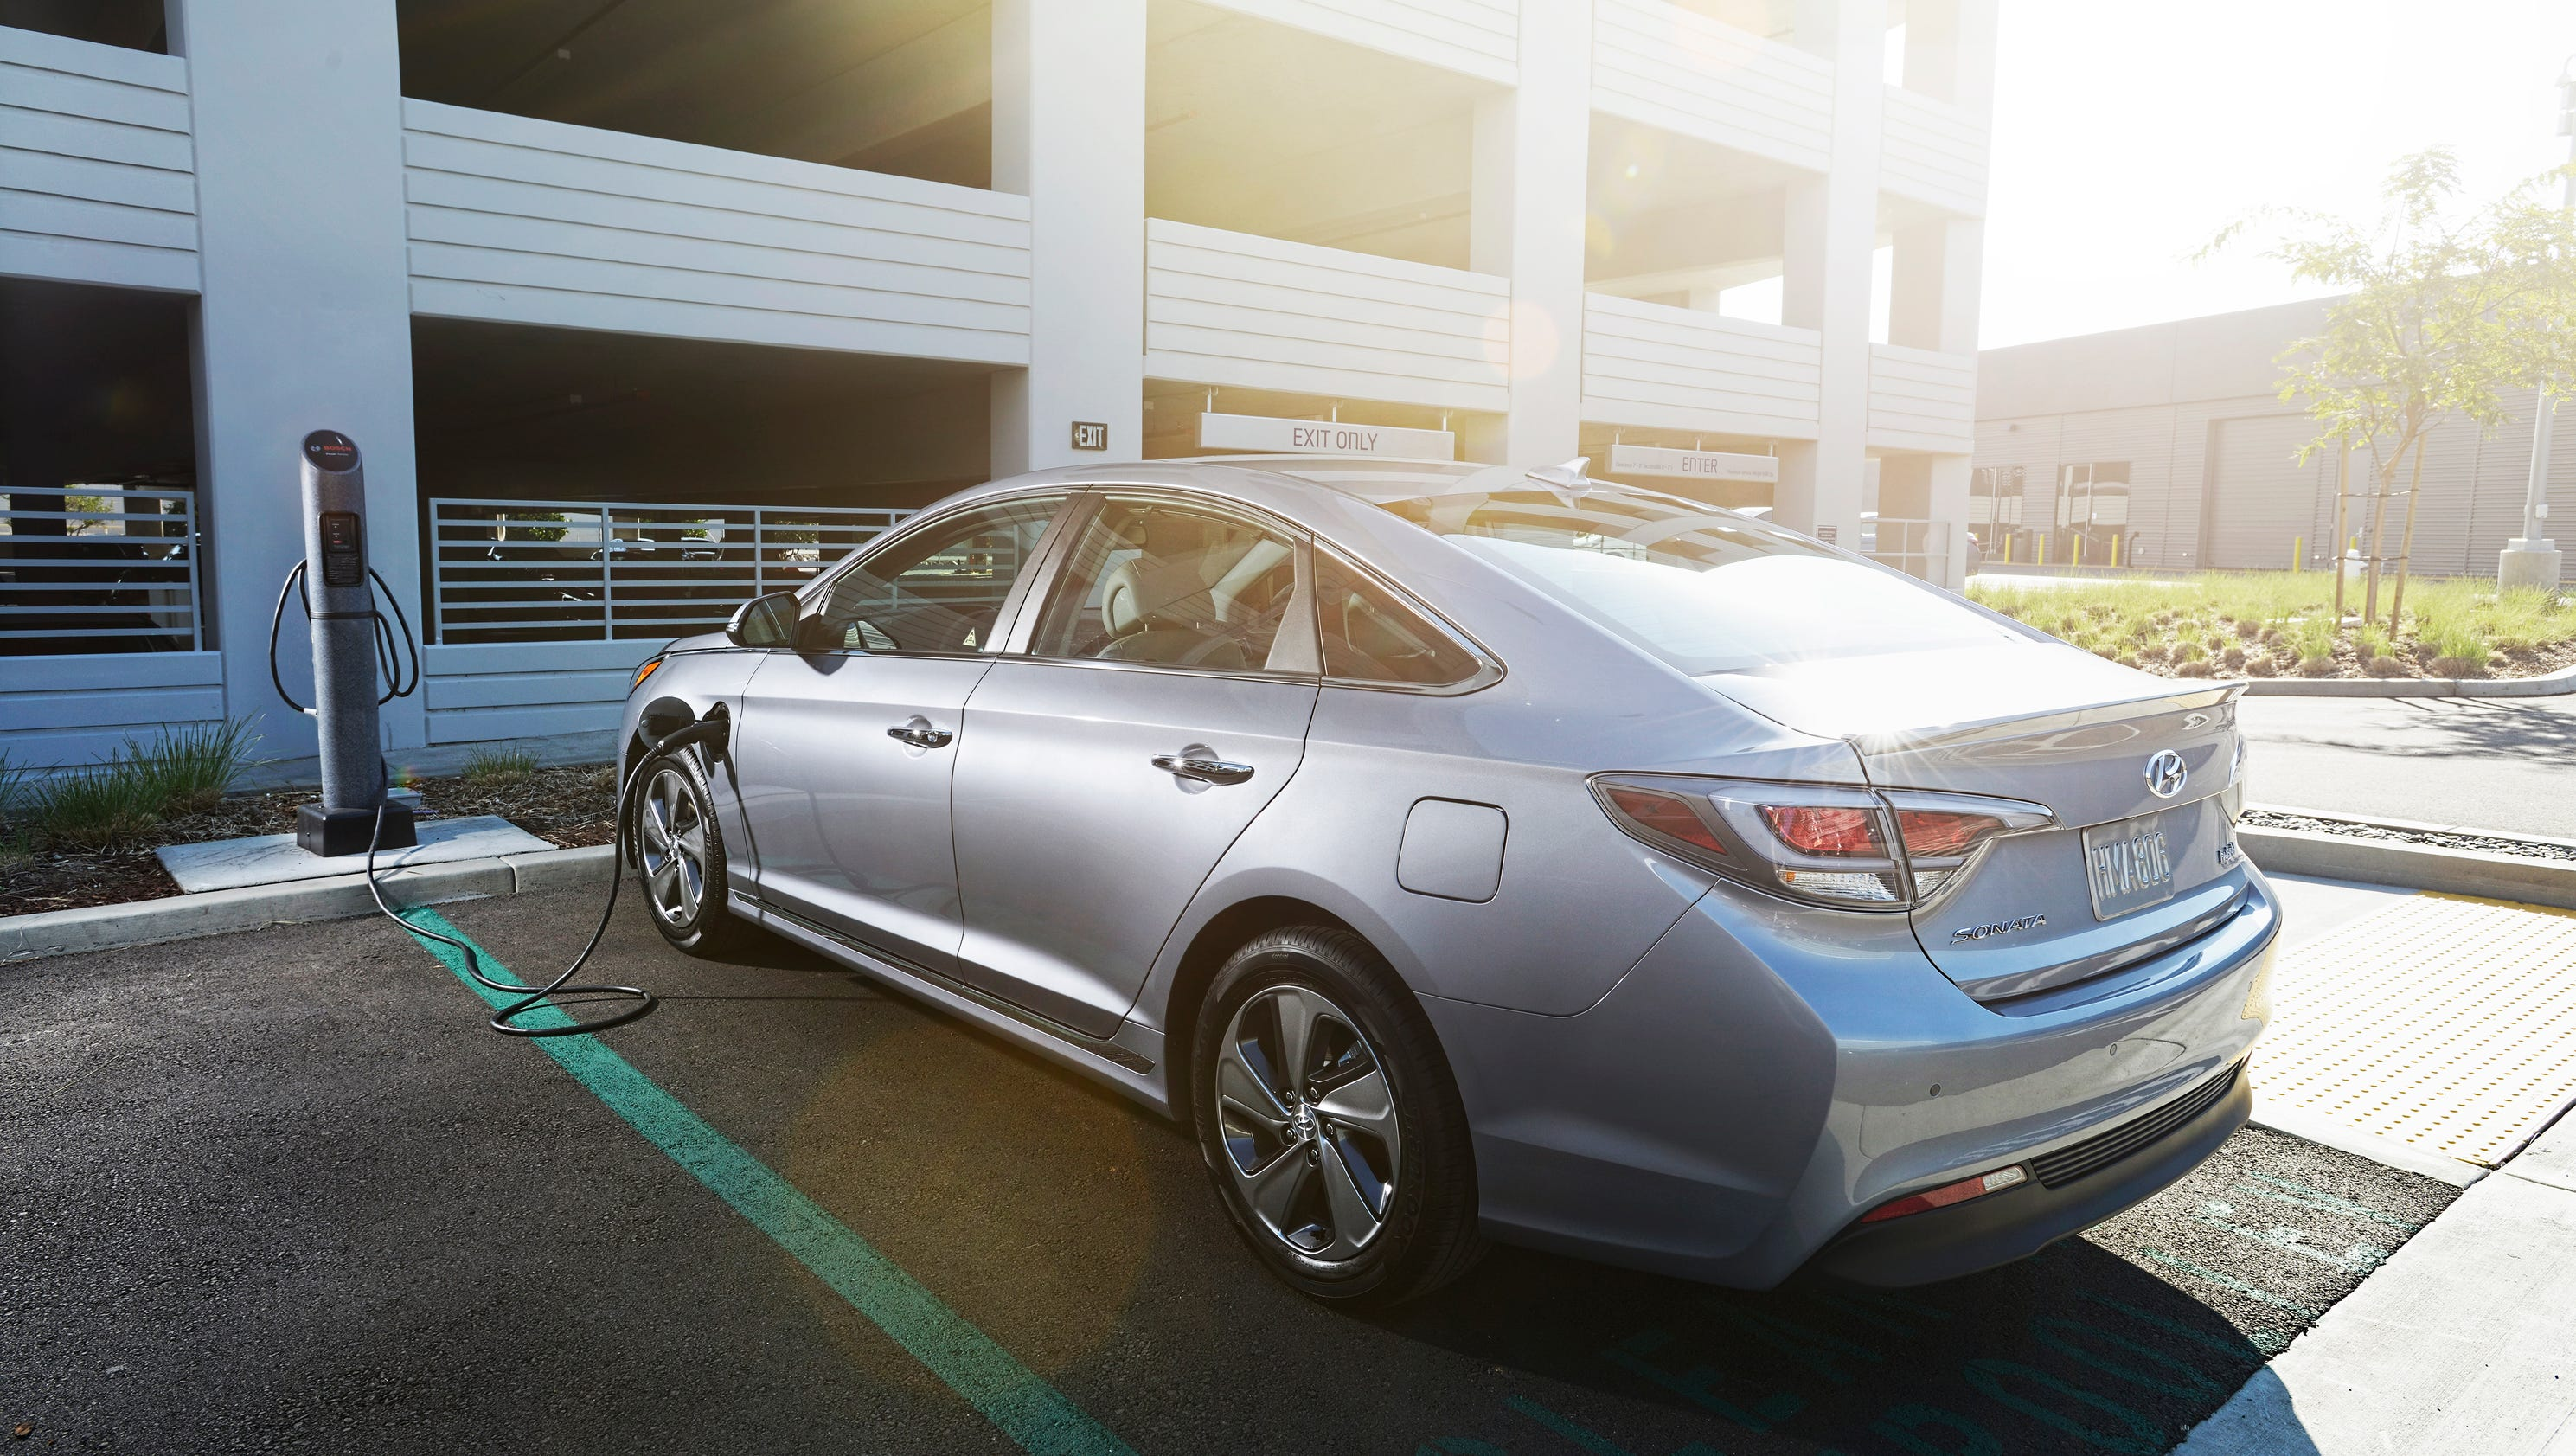 of sedan sport hyundai car invoice new prices pricing get limited research price sonata photograph pictures msrp hybrid the groovecar